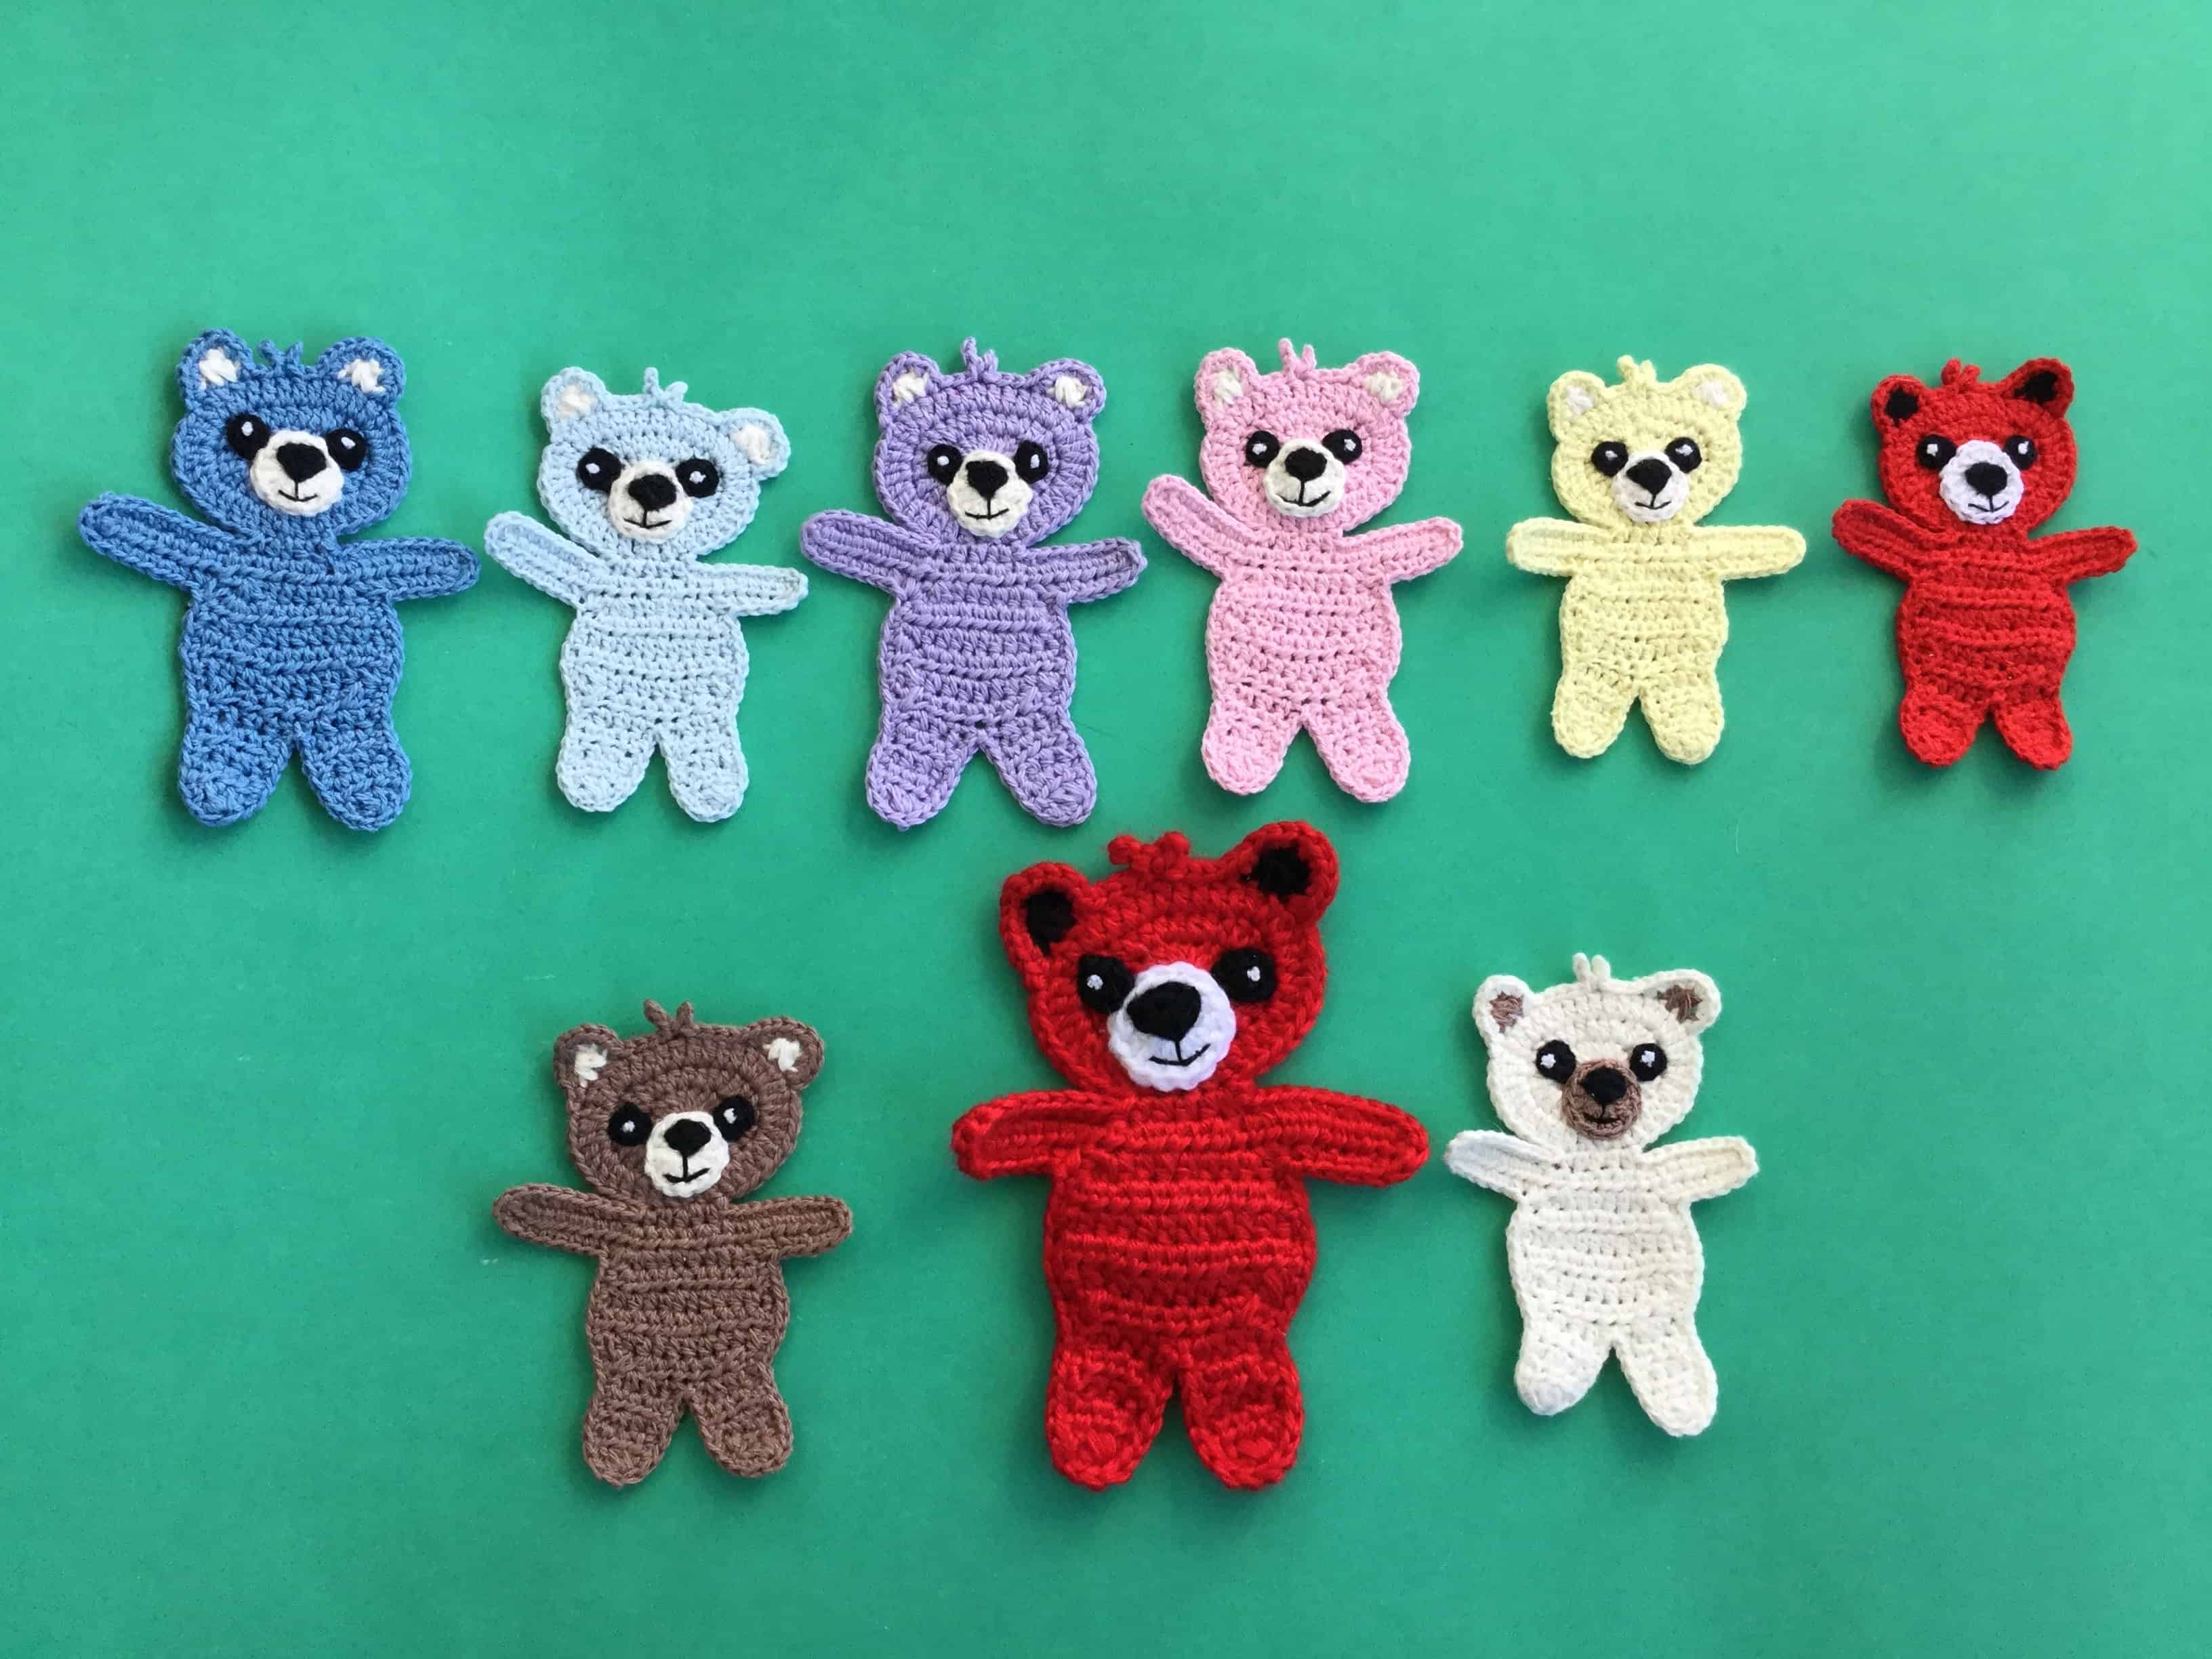 Finished crochet child teddy bear group landscape